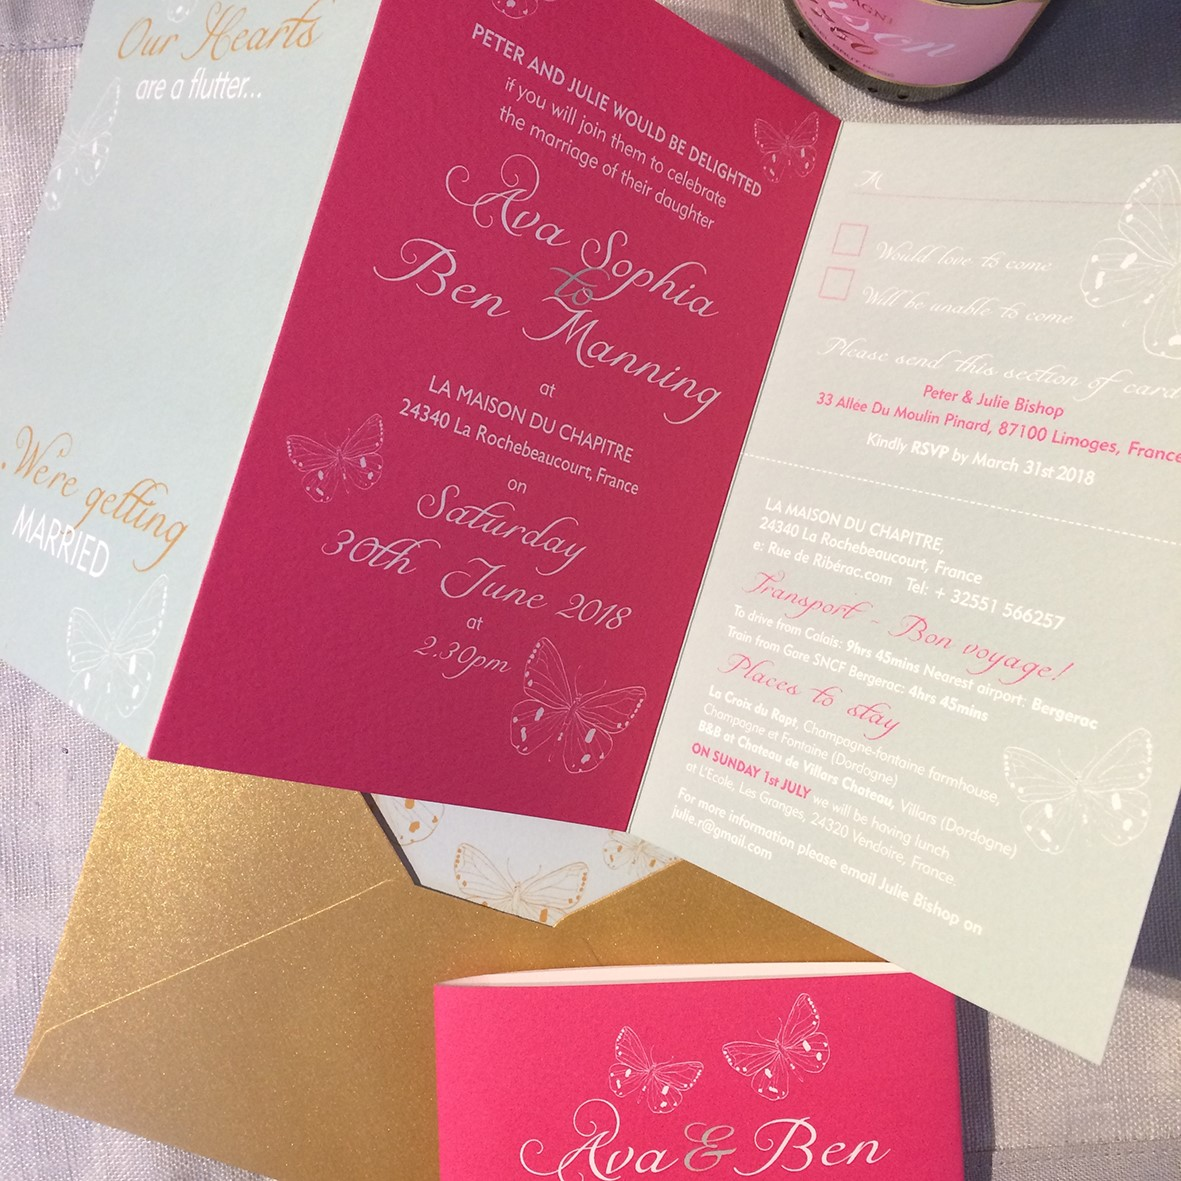 Flo & Burt Wedding Stationery - South Farm